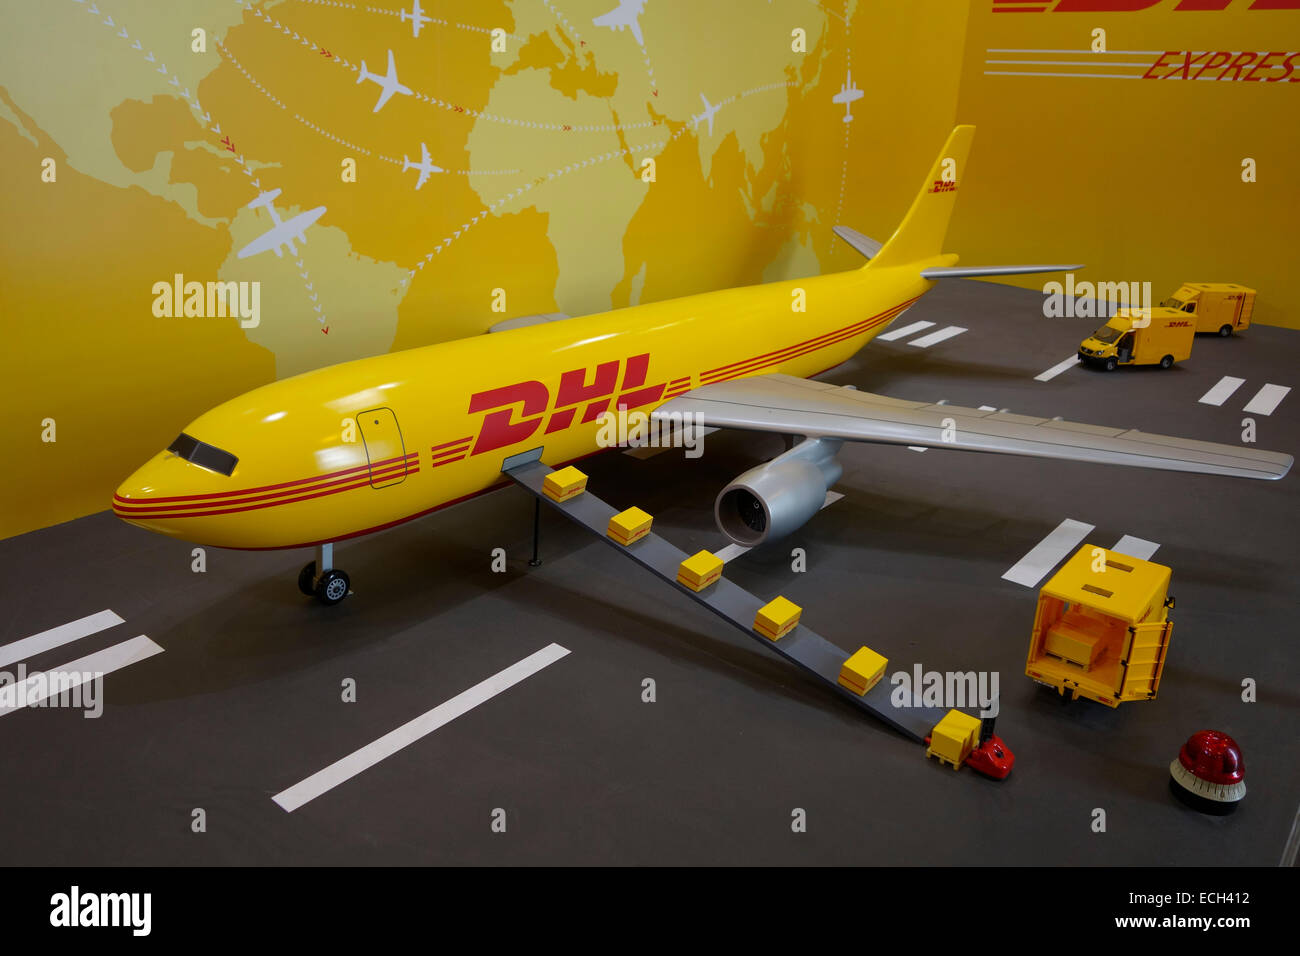 small model of dhl express cargo airplane stock photo 76593694 alamy. Black Bedroom Furniture Sets. Home Design Ideas